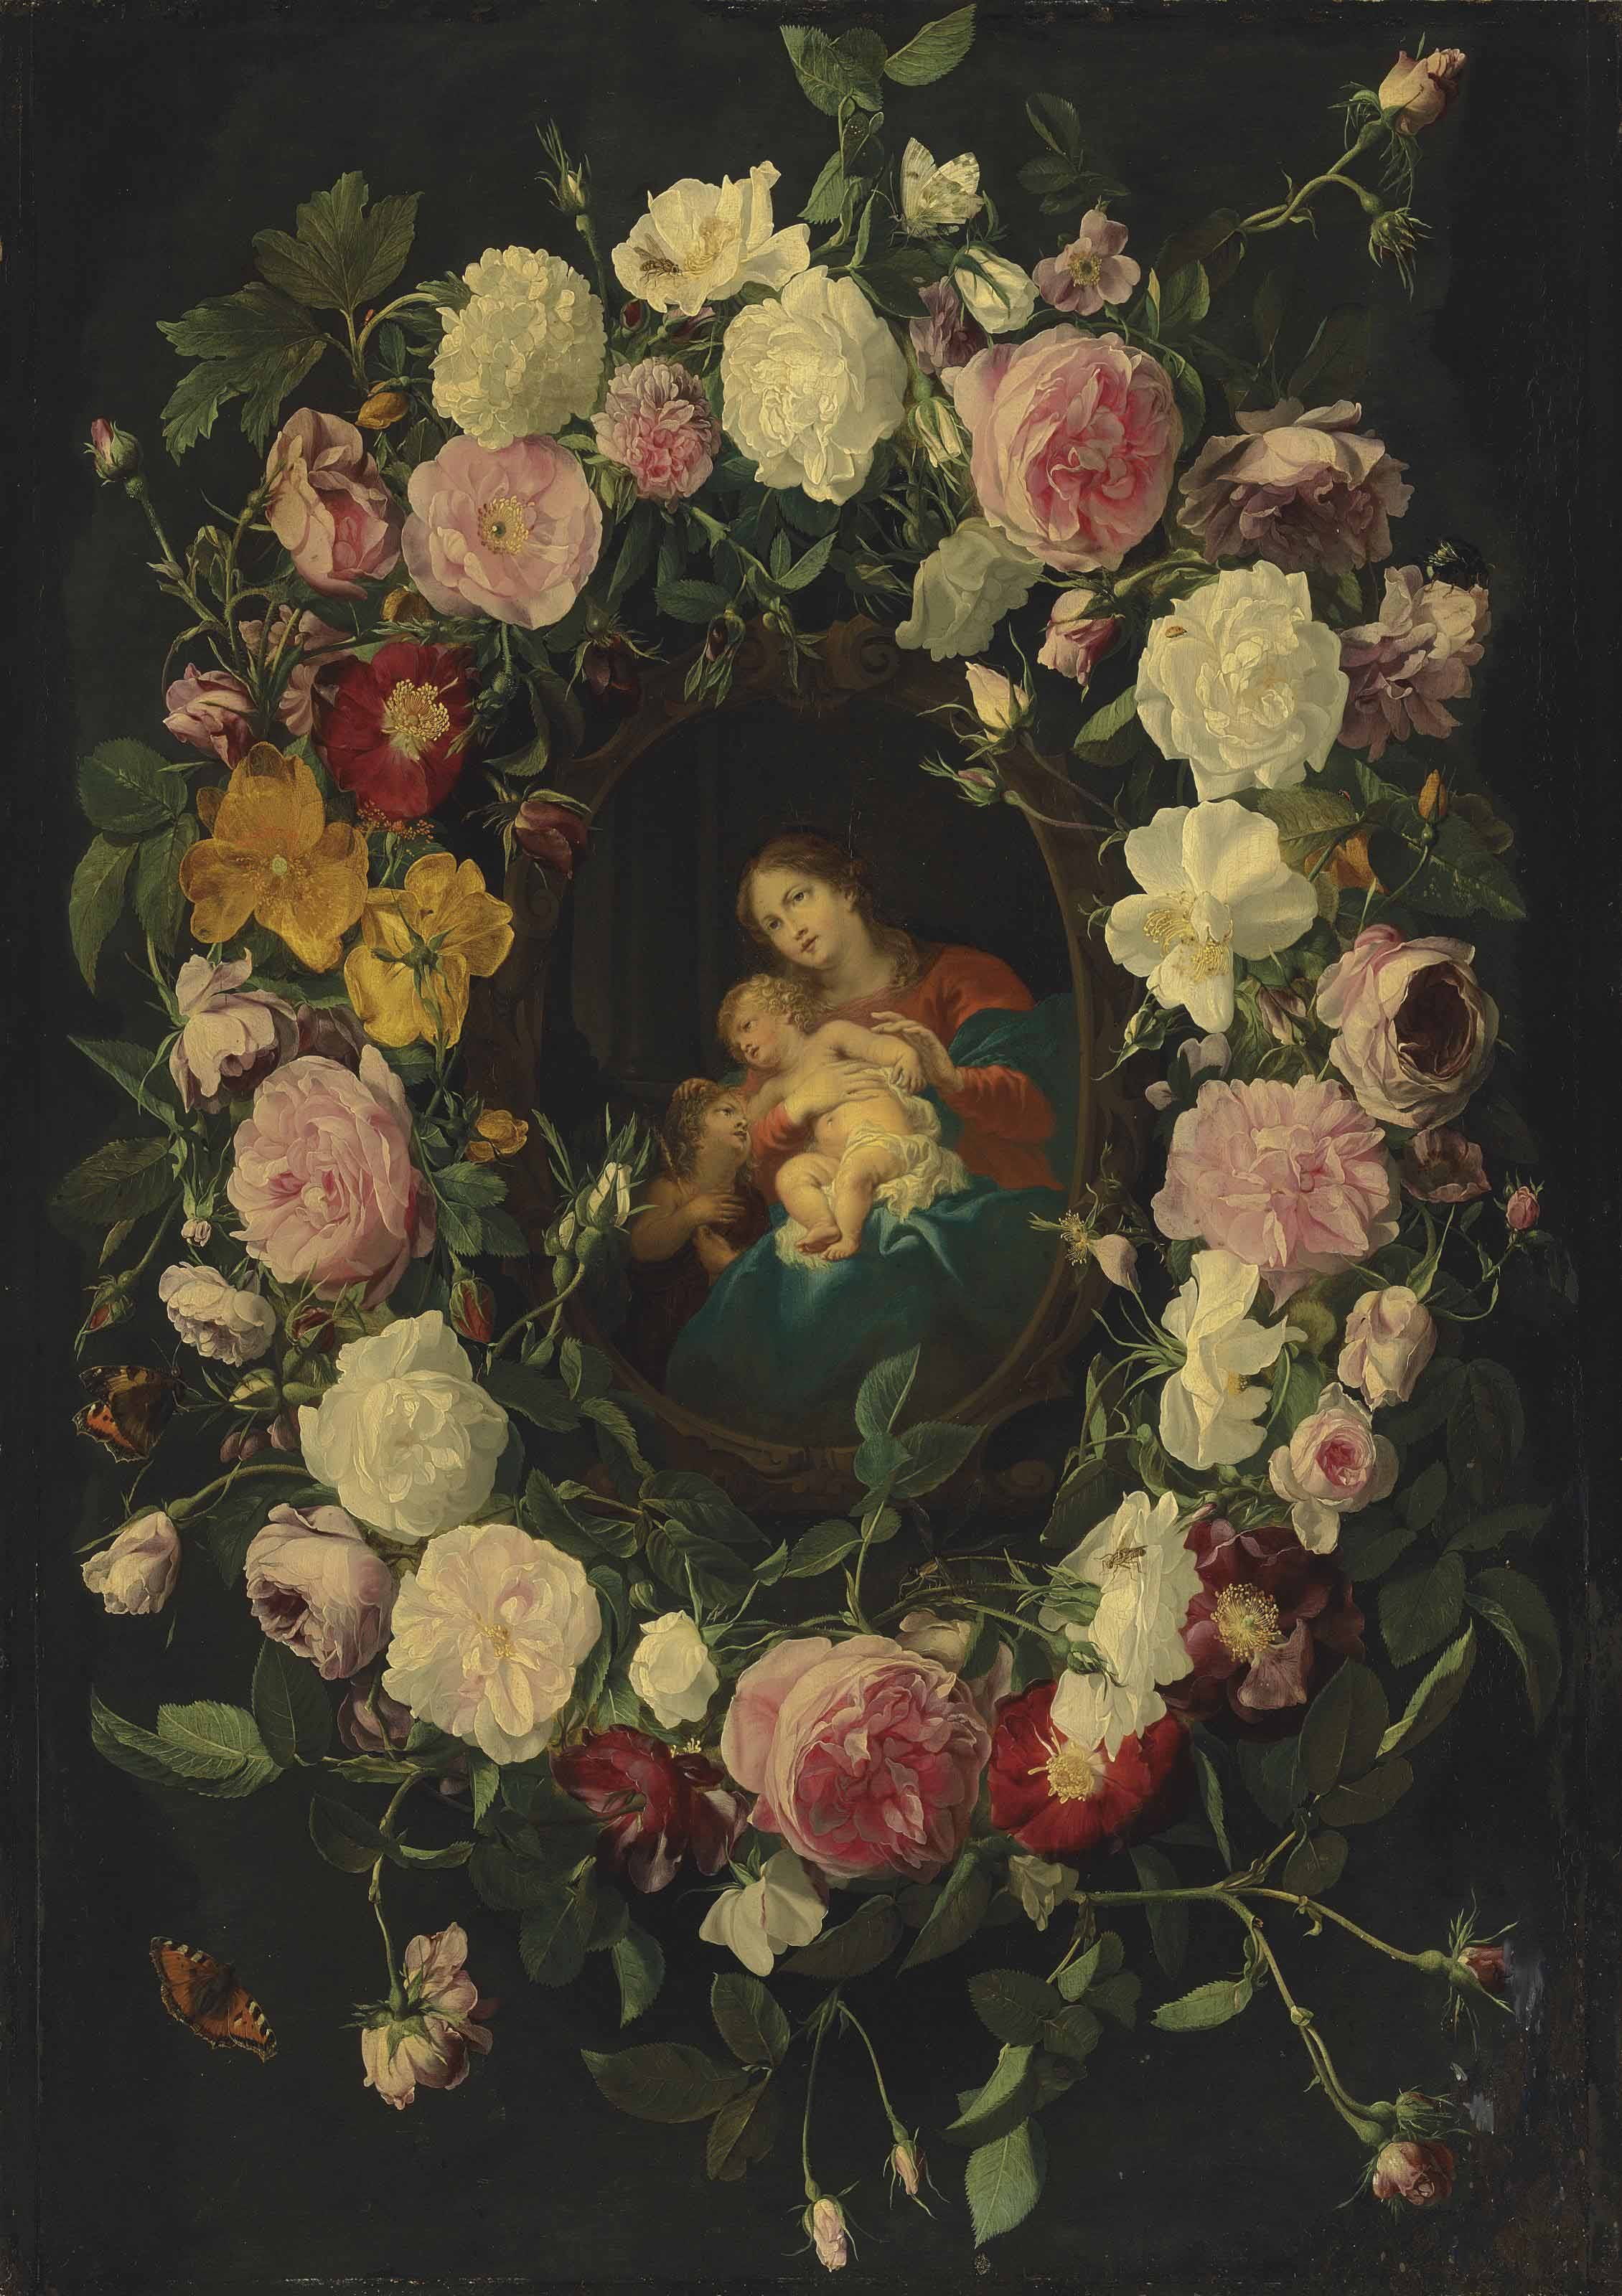 A garland of roses, with Red Admirals, wasps, ladybirds and other insects, with the Virgin and Child with the Infant Saint John the Baptist in a sculpted cartouche